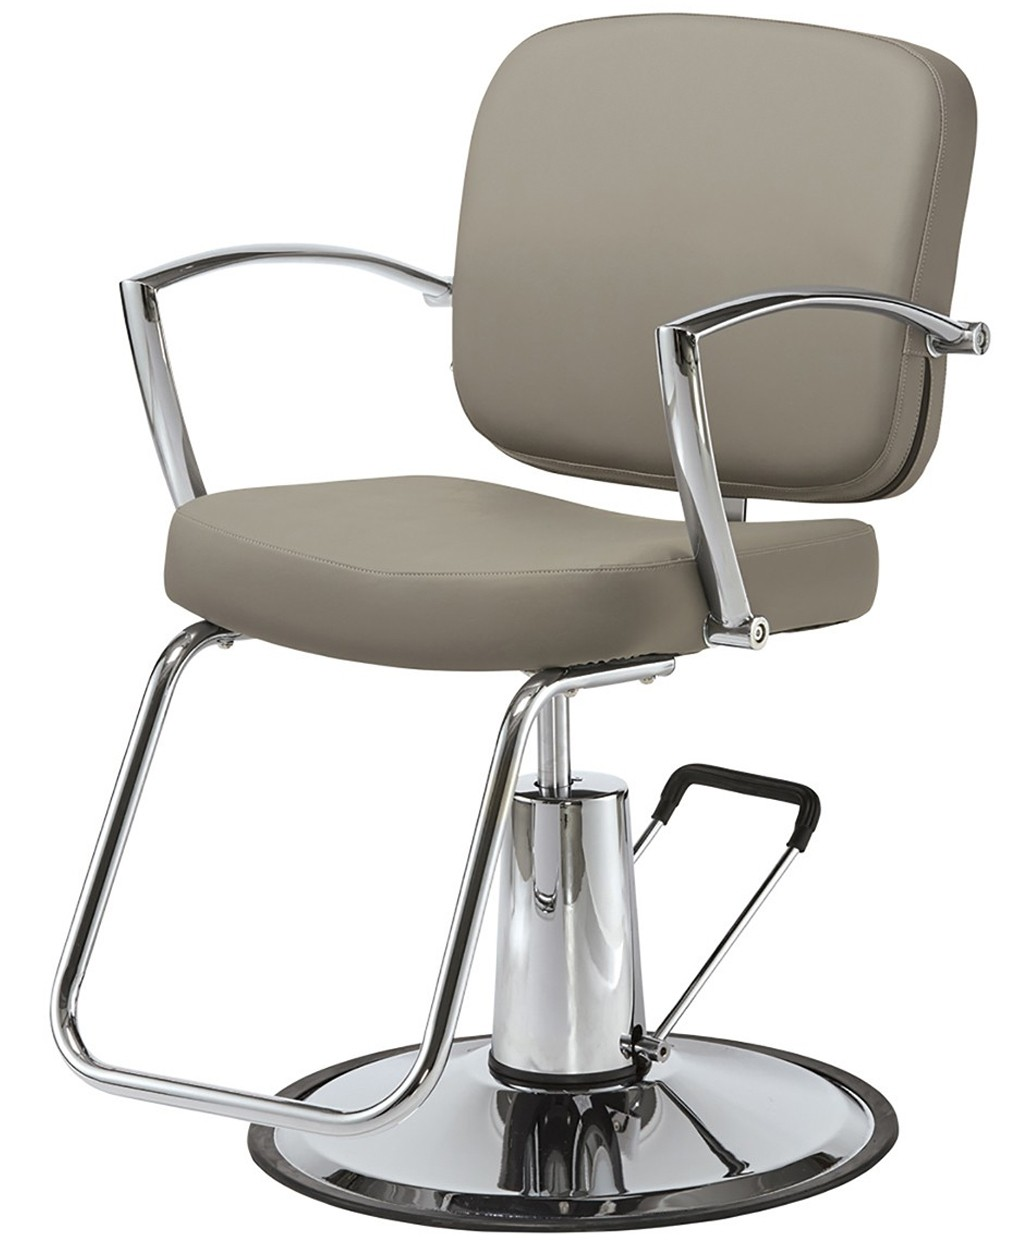 4 Operator Pibbs 3706 Pisa Package Pibbs 3706 Pisa Styling Chair